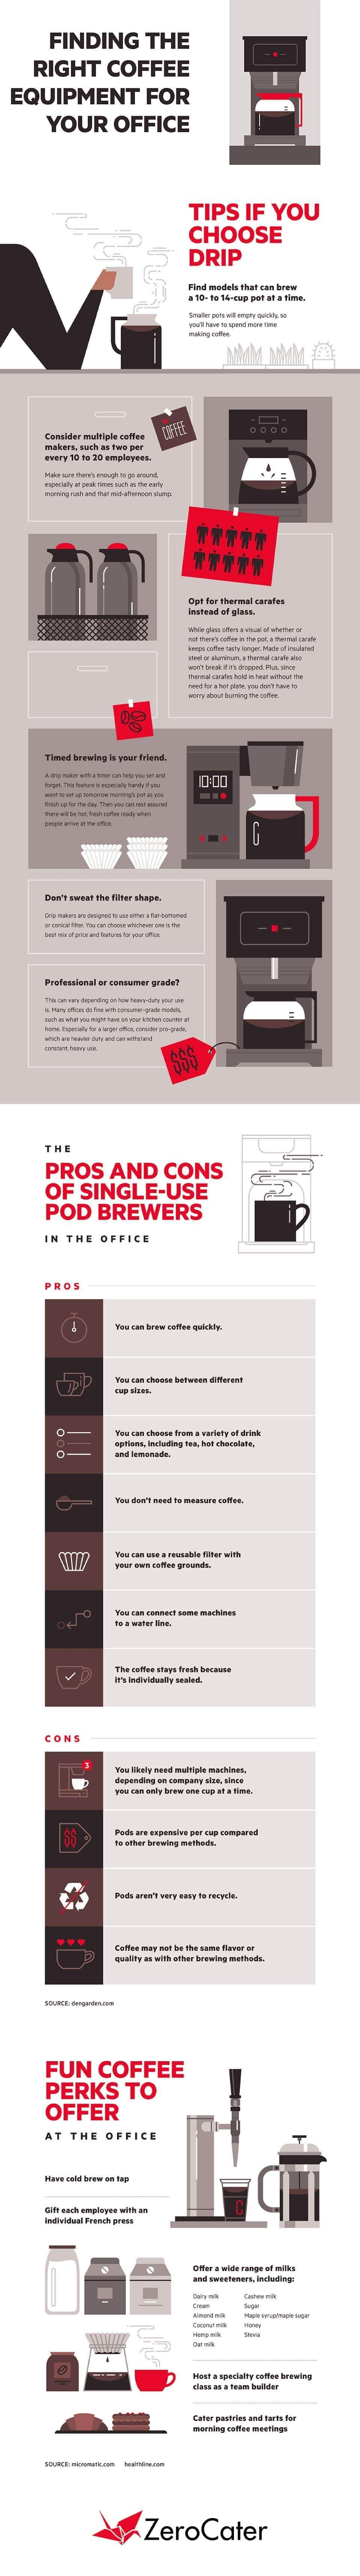 Finding the Right Coffee Equipment for Your Office